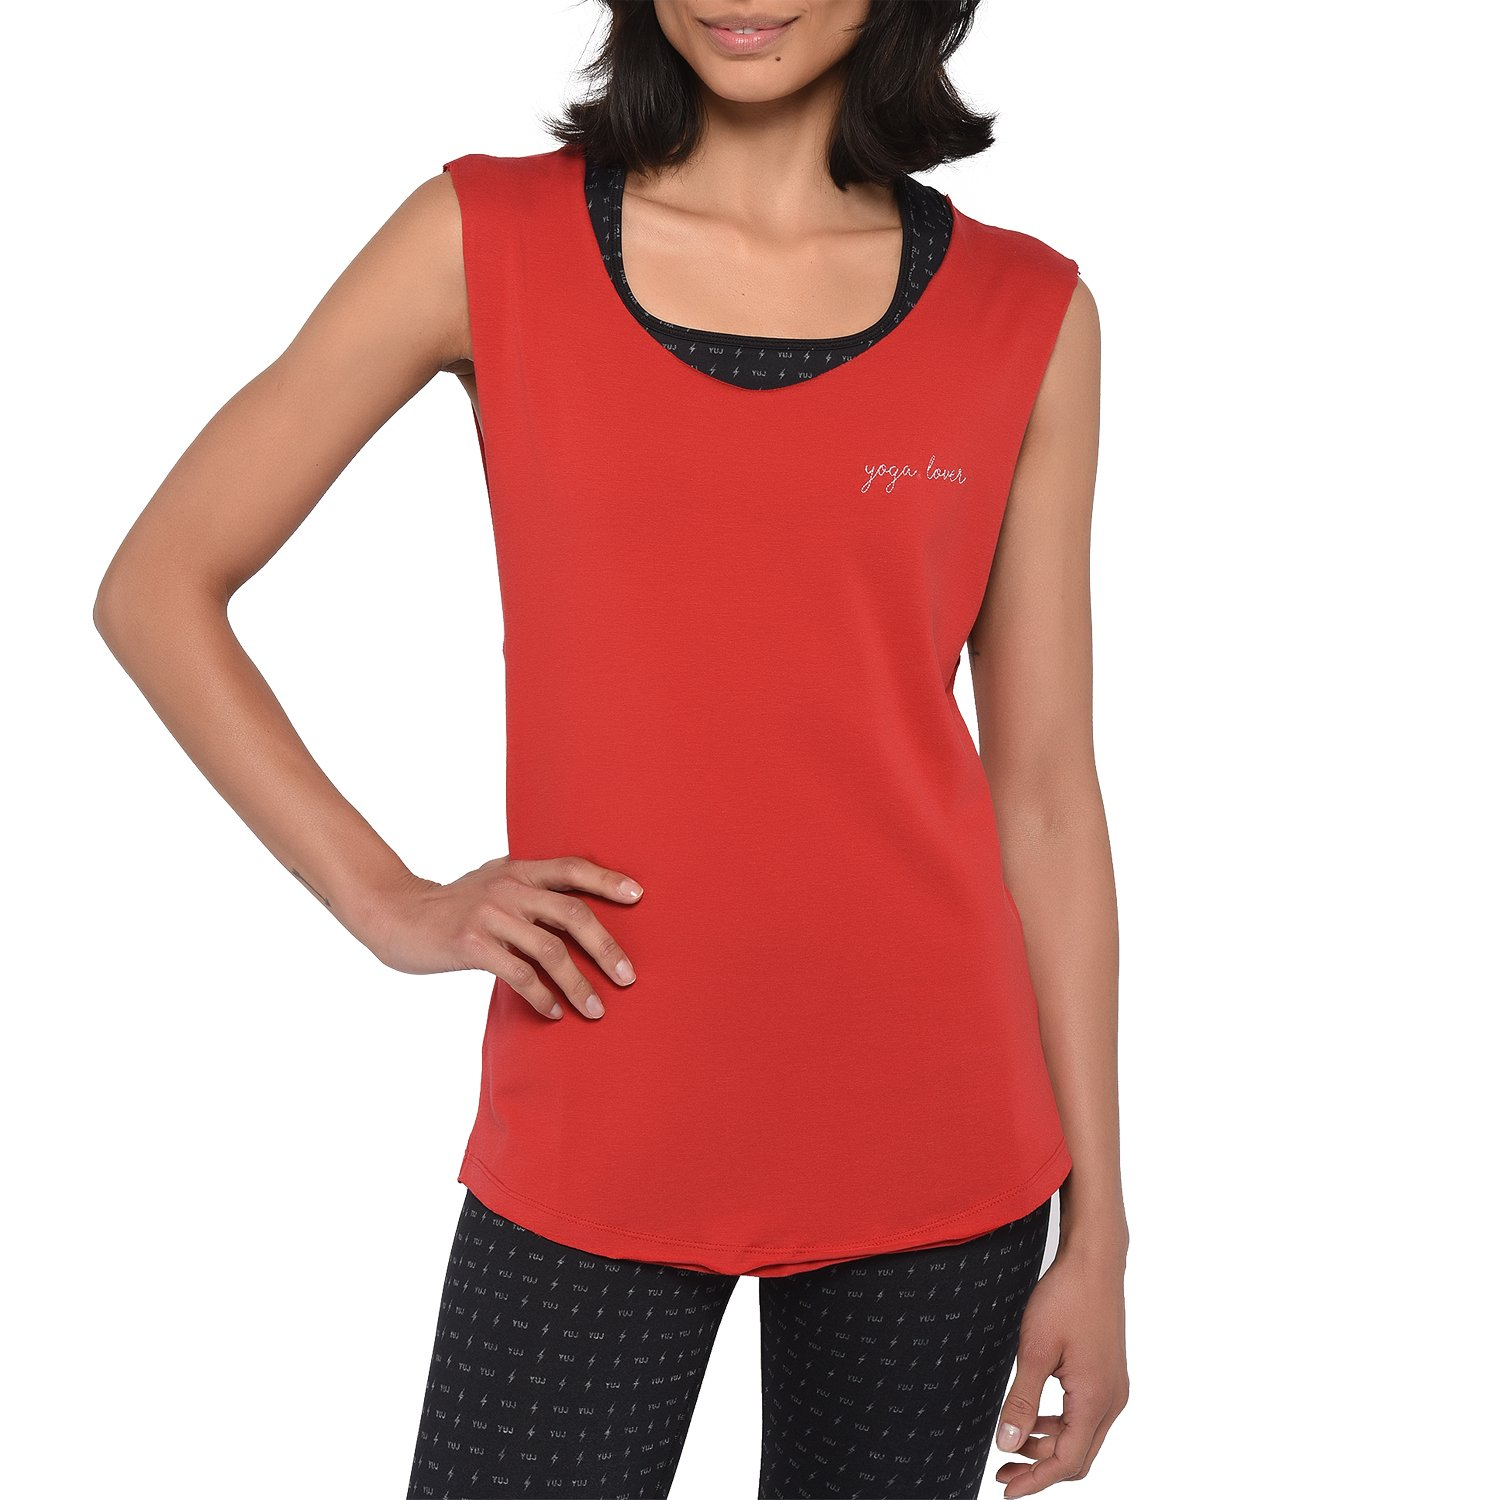 YUJ Yoga Lover Damen Top S